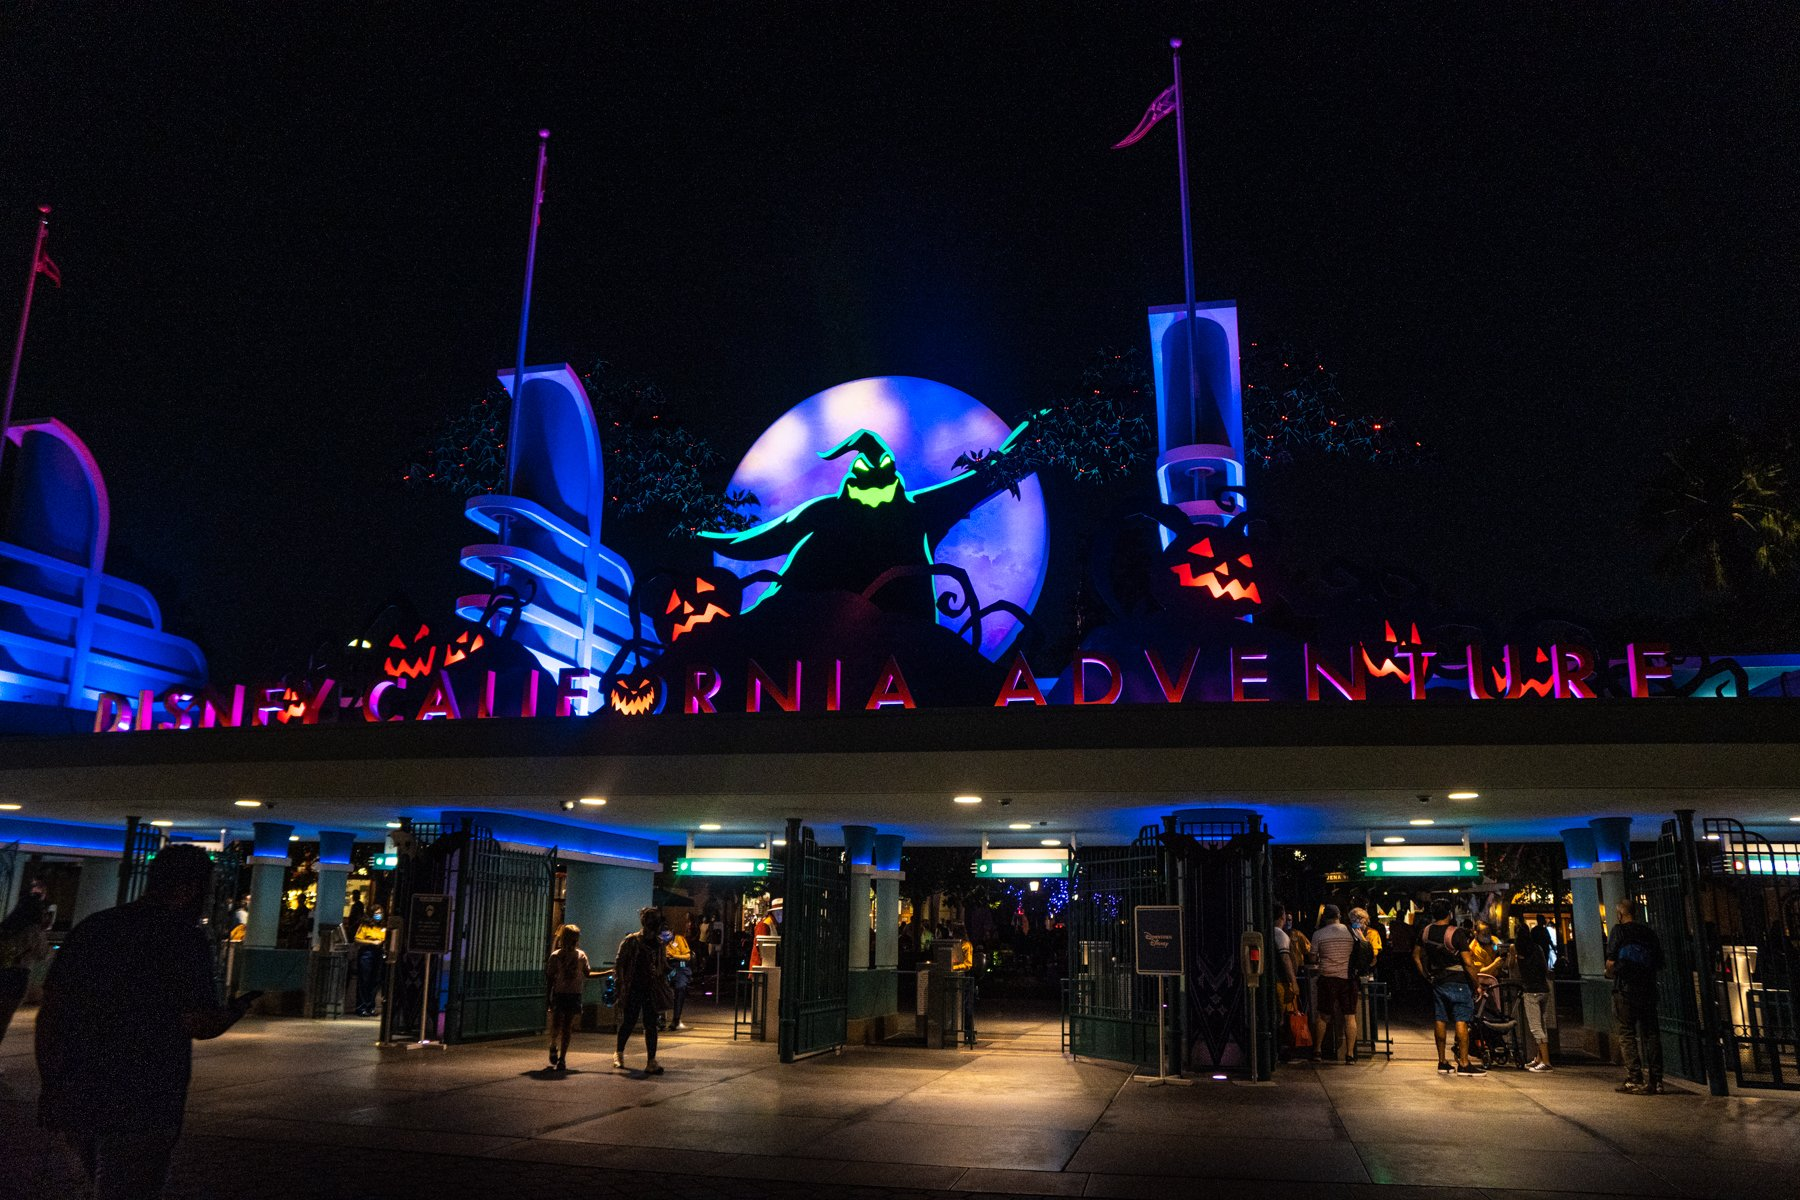 Oogie Boogie on the entrance of California Adventure